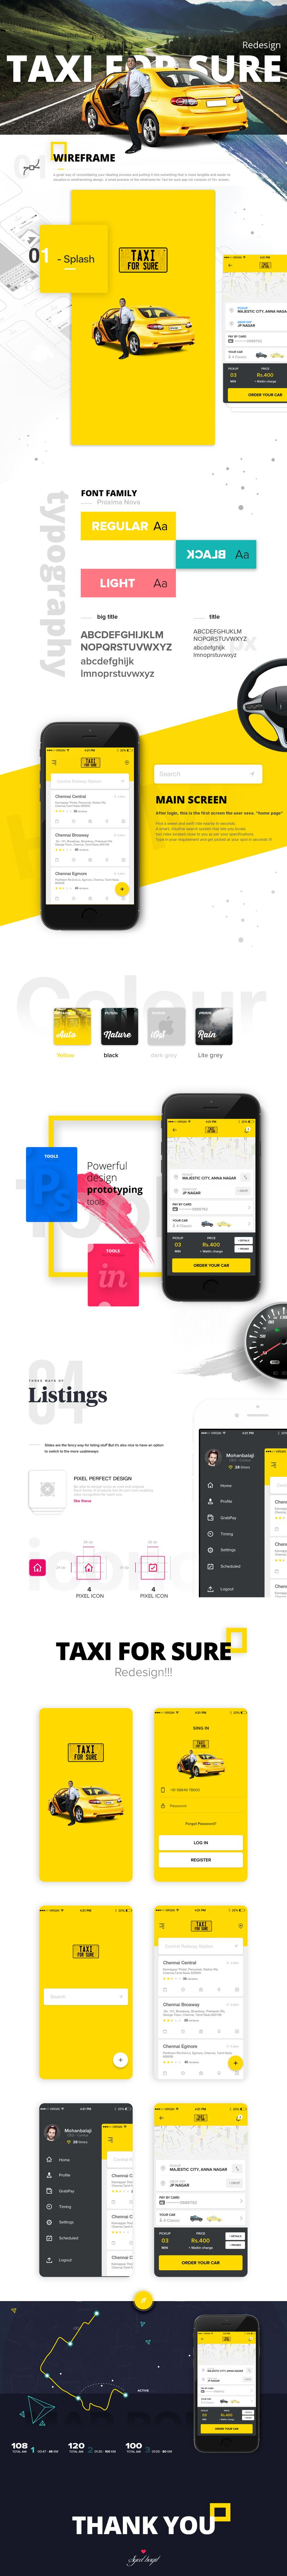 """Consulta este proyecto @Behance: """"2016 Taxi for sure App Redesign"""" https://www.behance.net/gallery/35162169/2016-Taxi-for-sure-App-Redesign"""